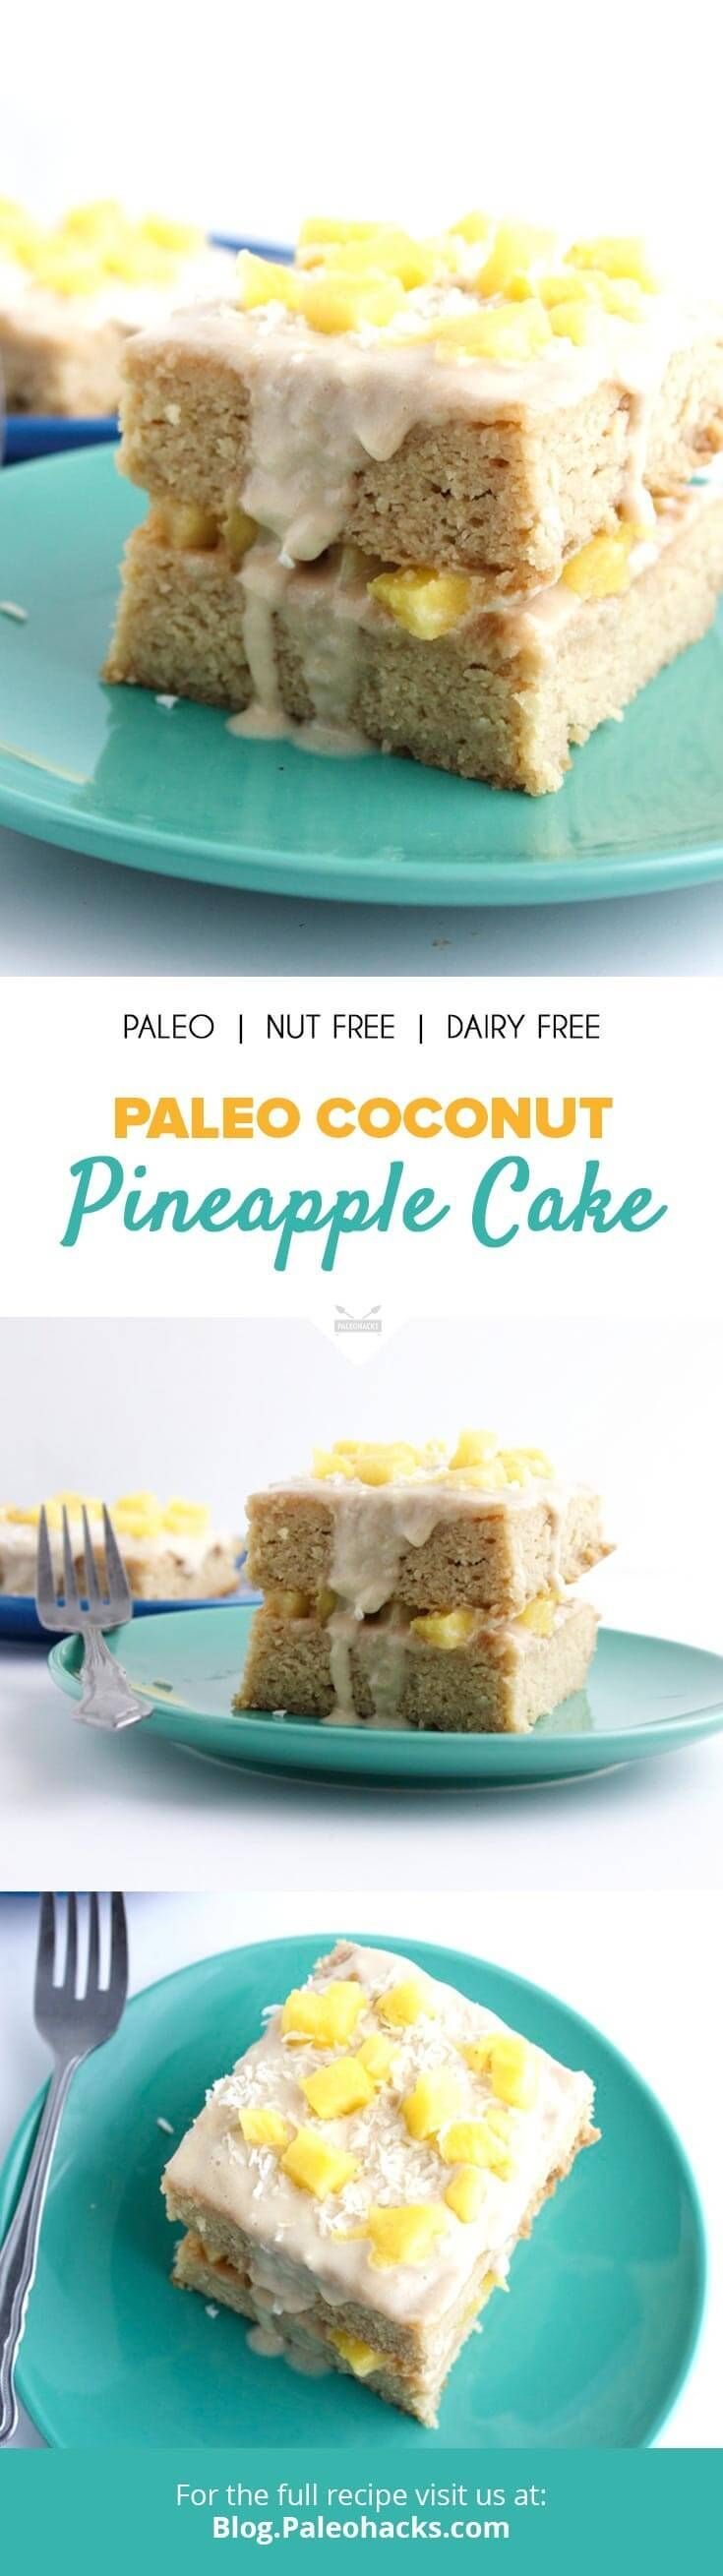 Made from coconut flour and topped with coconut icing and pineapple, this Paleo Coconut Pineapple Cake is moist, fruity and delicious! Get the full recipe here: http://paleo.co/cocopinecake